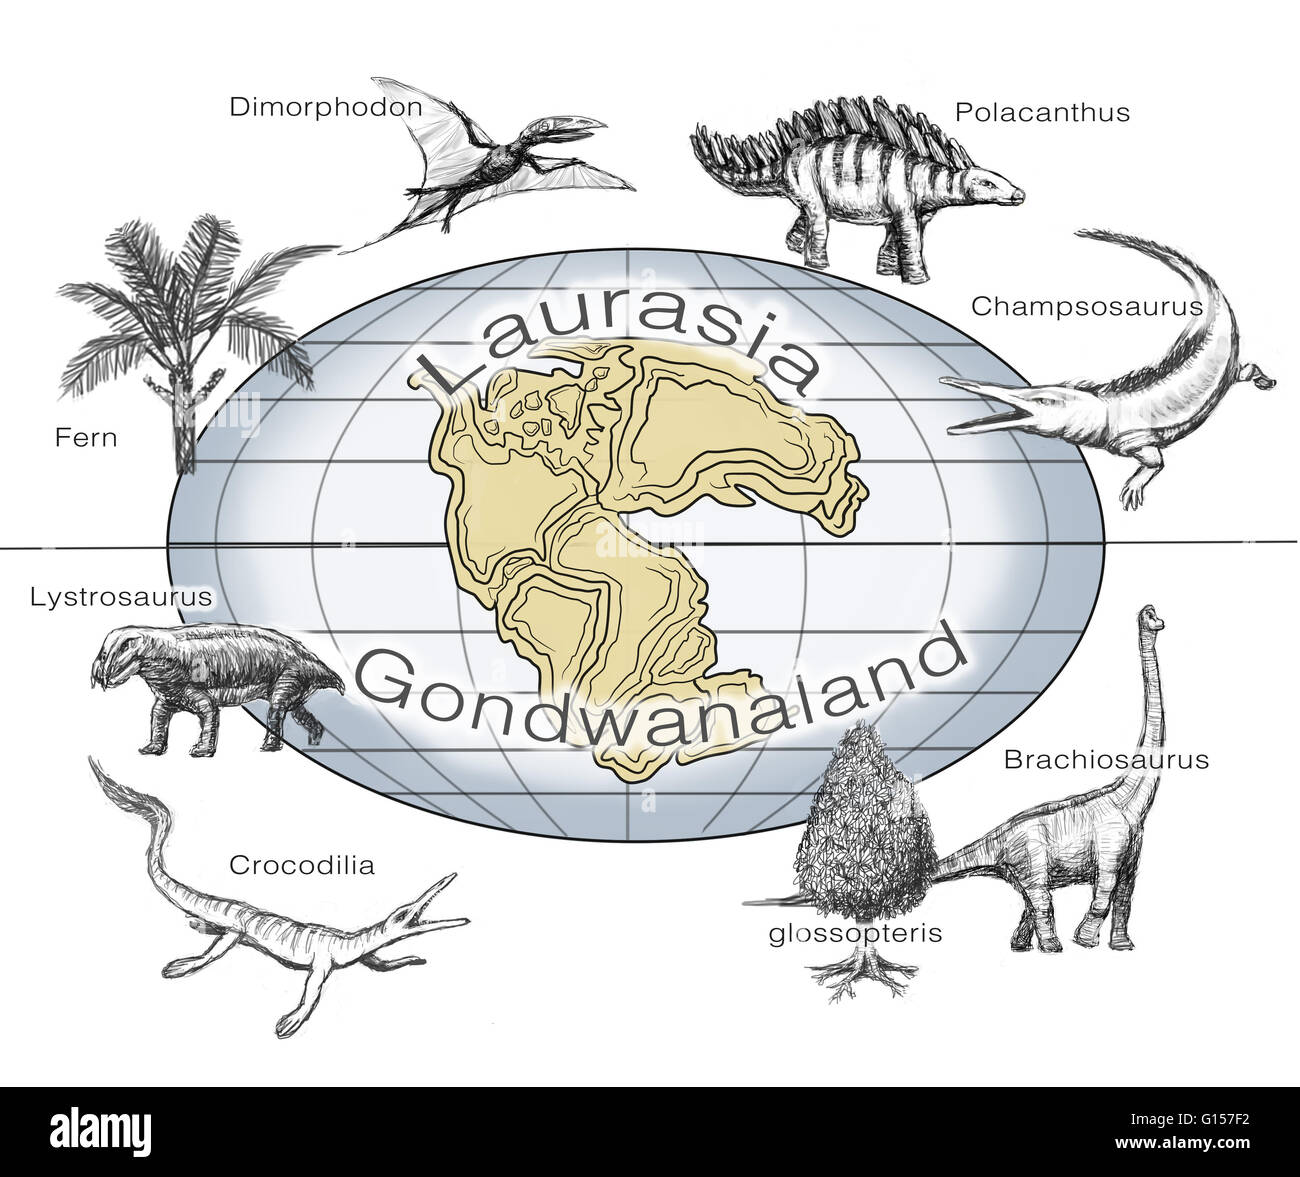 Illustration of common plants and animals on the two supercontinents Laurasia and Gondwanaland, that existed from - Stock Image